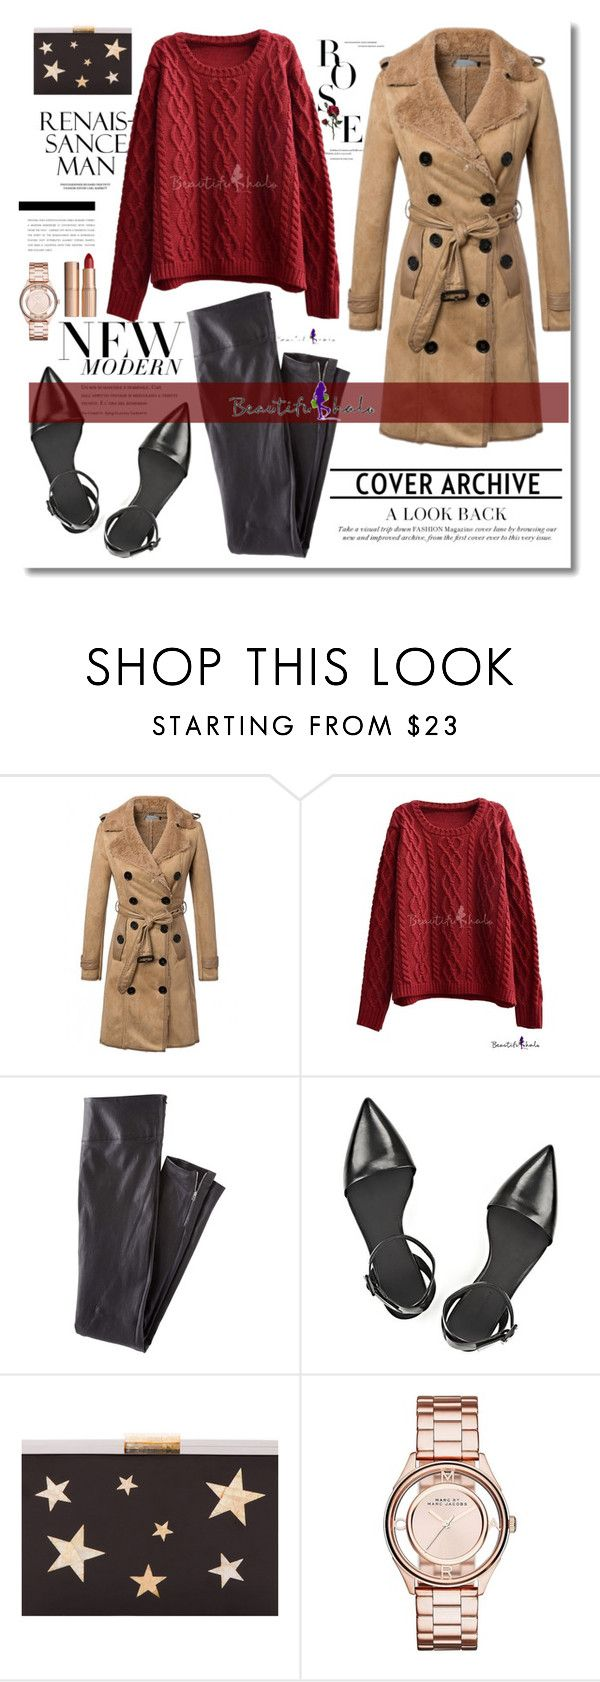 """Bhalo"" by dora04 ❤ liked on Polyvore featuring Wrap, Alexander Wang, Kayu, Marc by Marc Jacobs, Charlotte Tilbury and vintage"